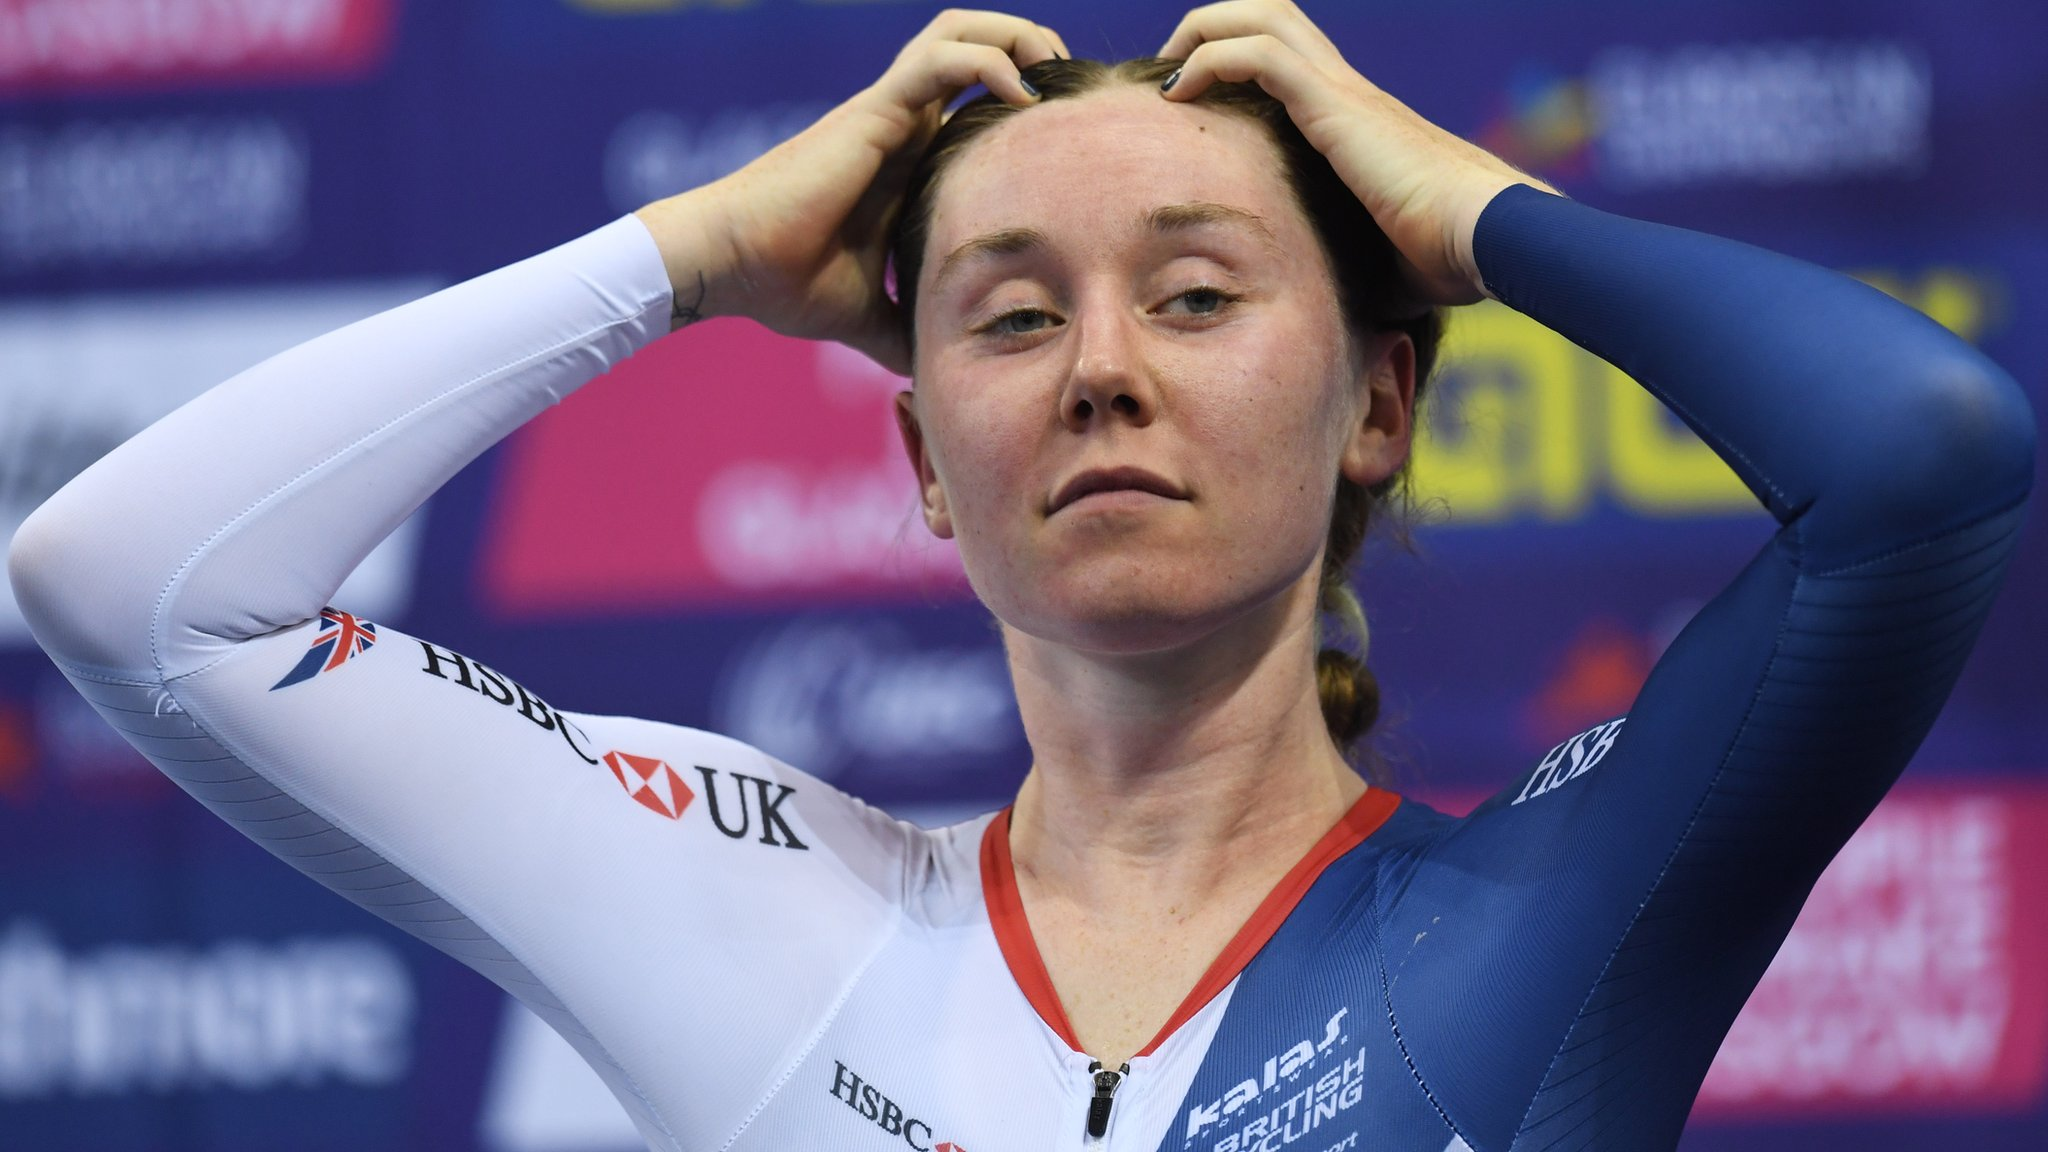 'I asked my mum to stop sending me clippings': Archibald still dejected by Worlds performance